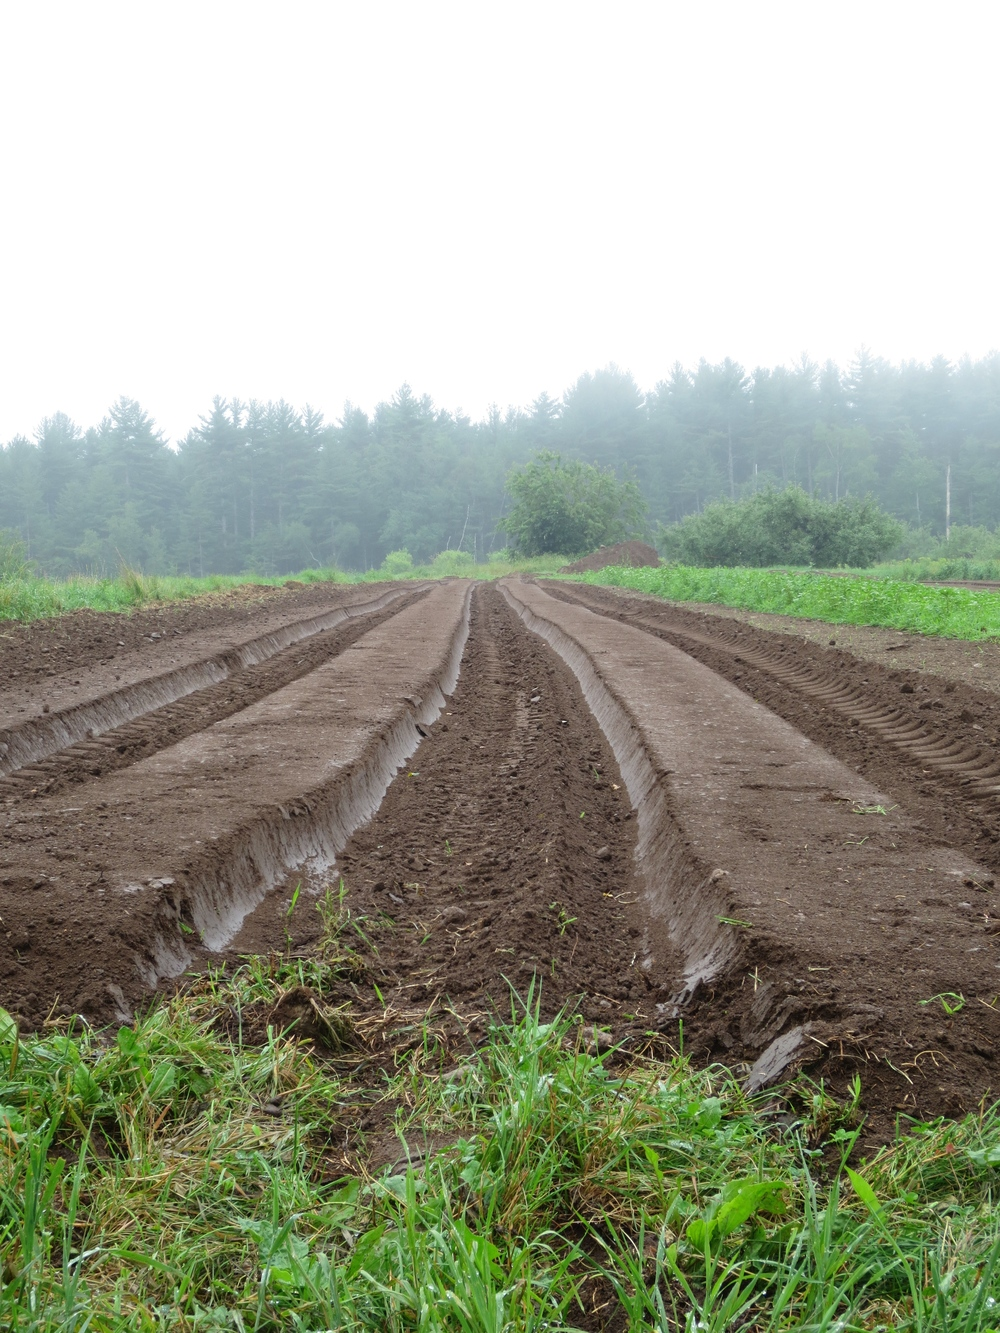 Field prepped and ready for strawberries- a highlight at this year's Open Farm Day.